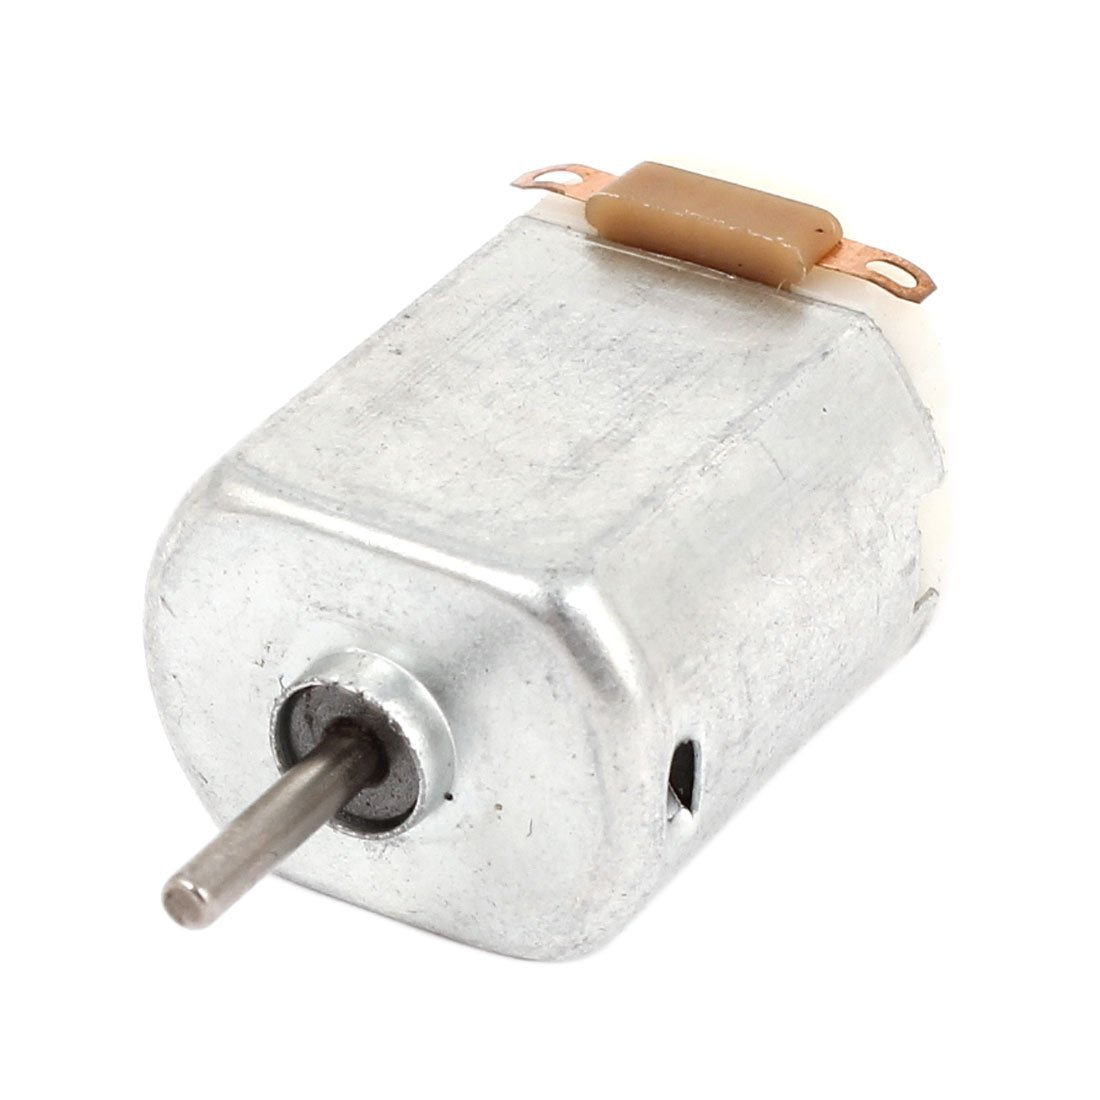 Dc 1.5v 3v Mini Electric Motor 18000 Rpm Diy Toy Hobby Quell Summer Thirst